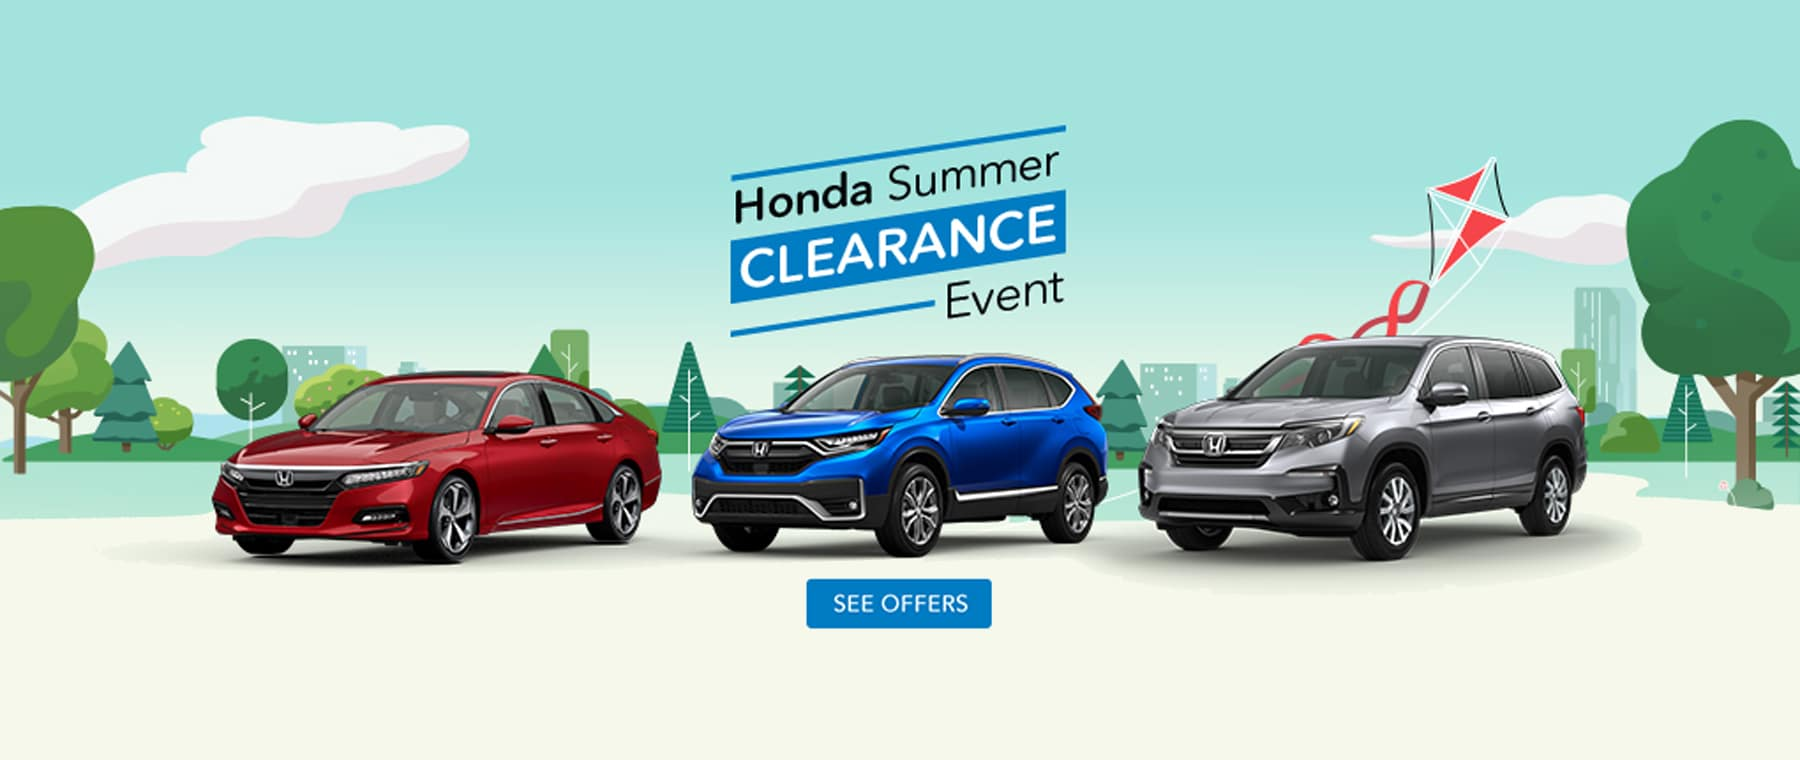 Honda City Summer Clearance Sales Event